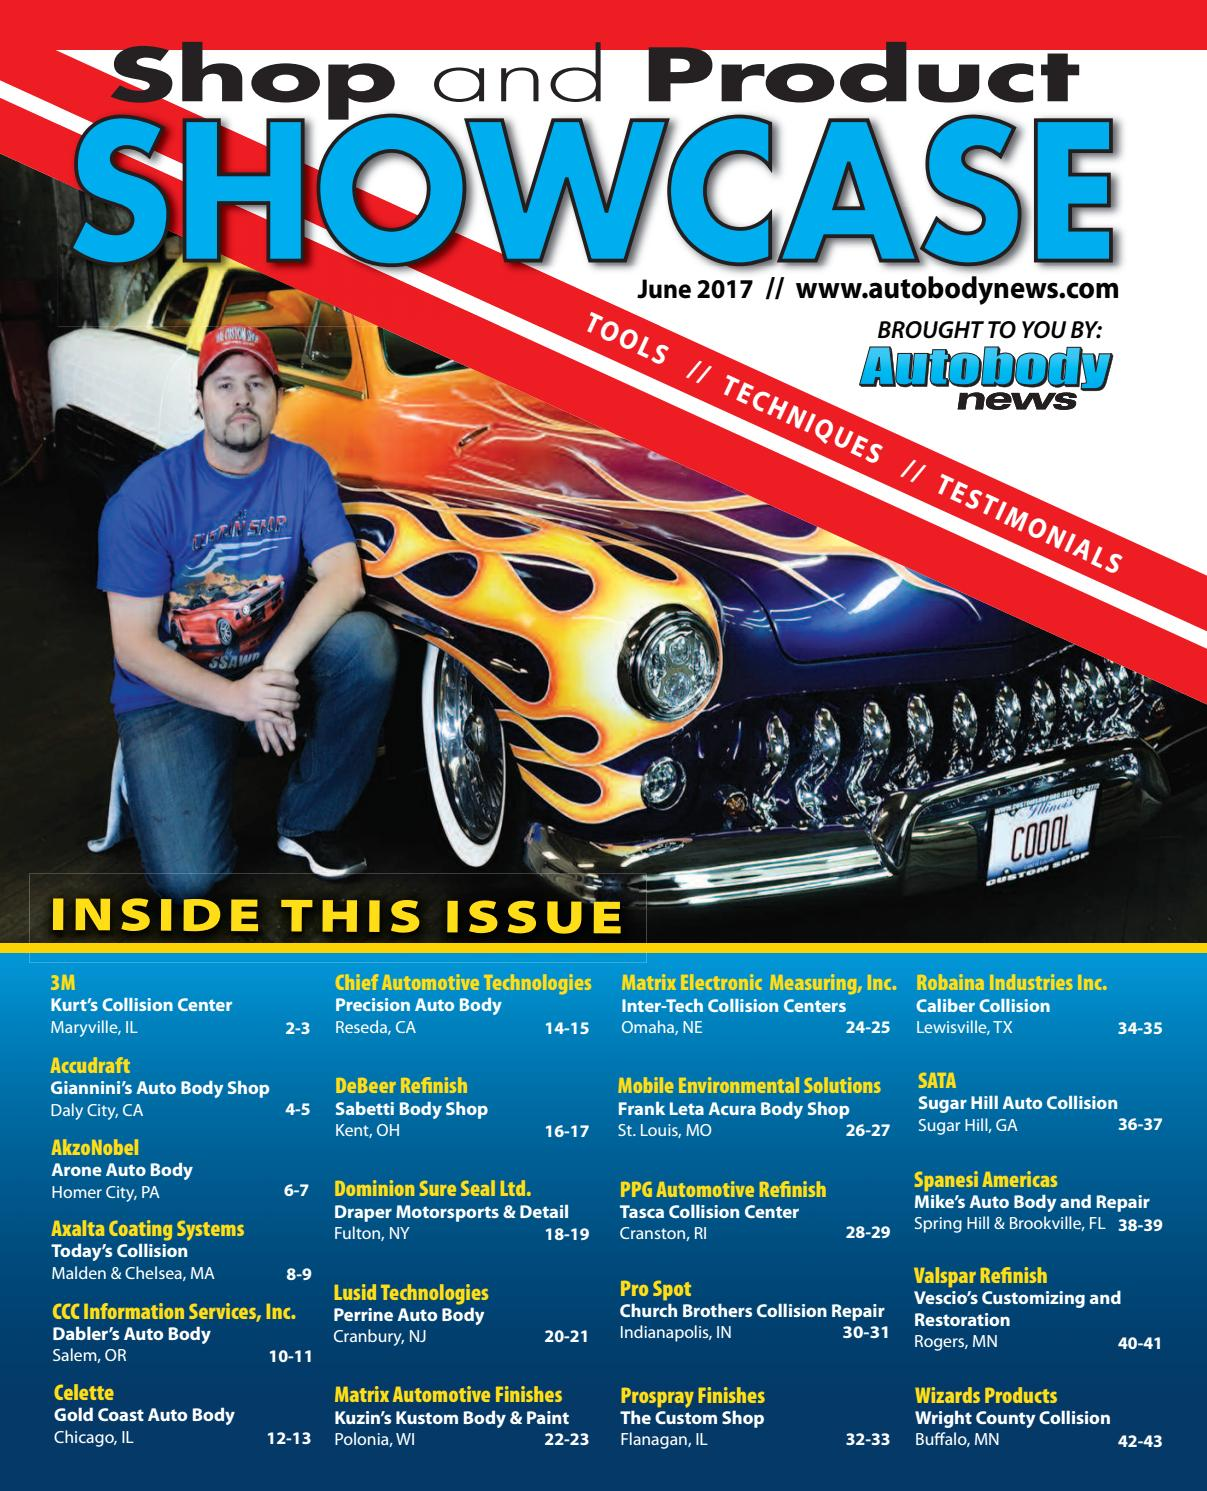 June 2017 Shop & Product Showcase By Autobody News